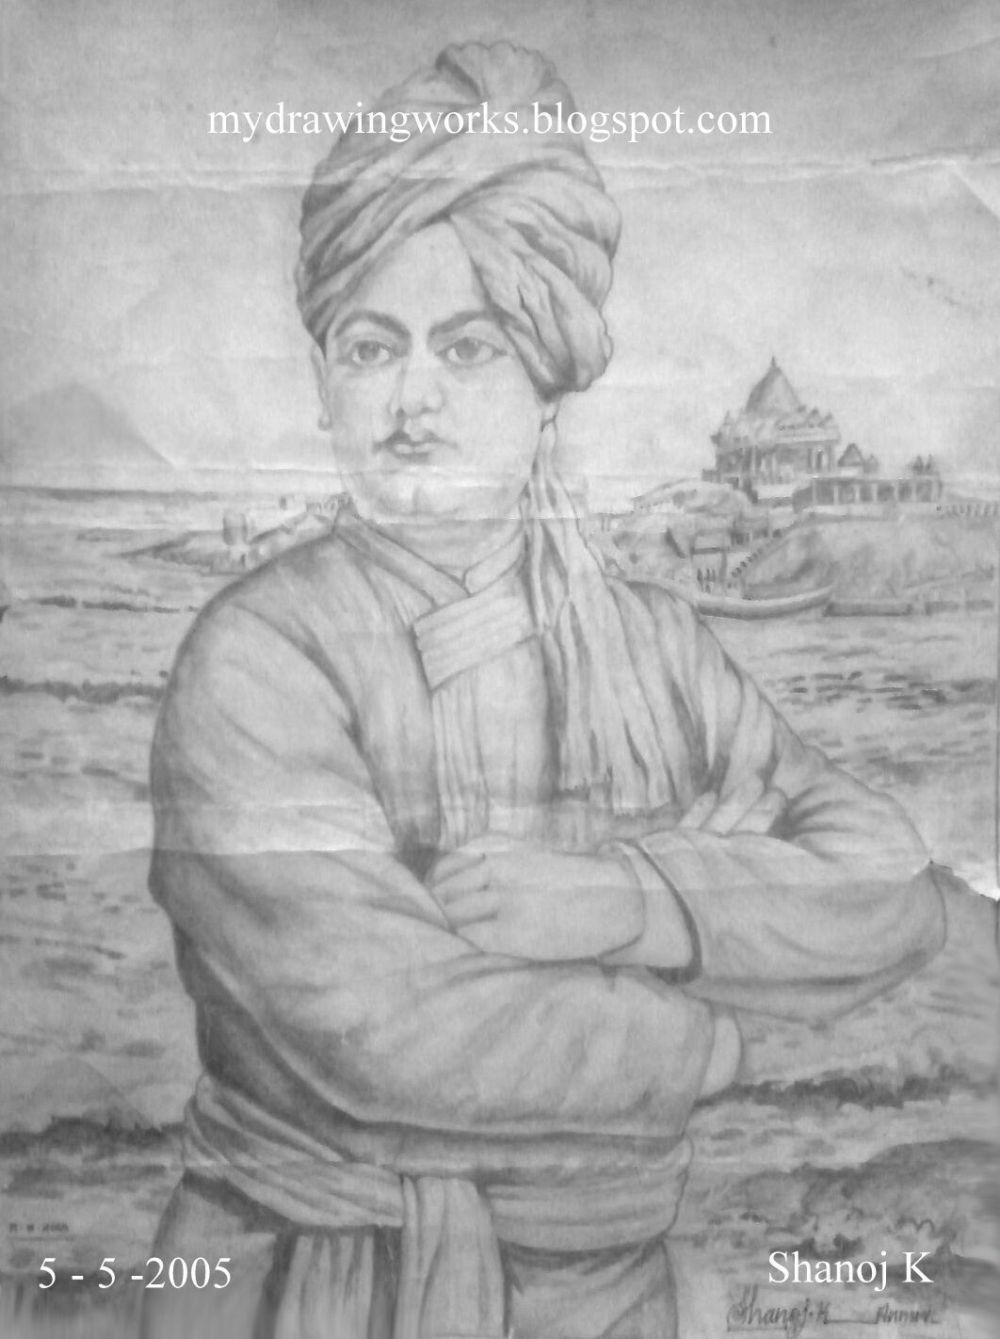 My old pencil drawing work drawn in 05 05 2005